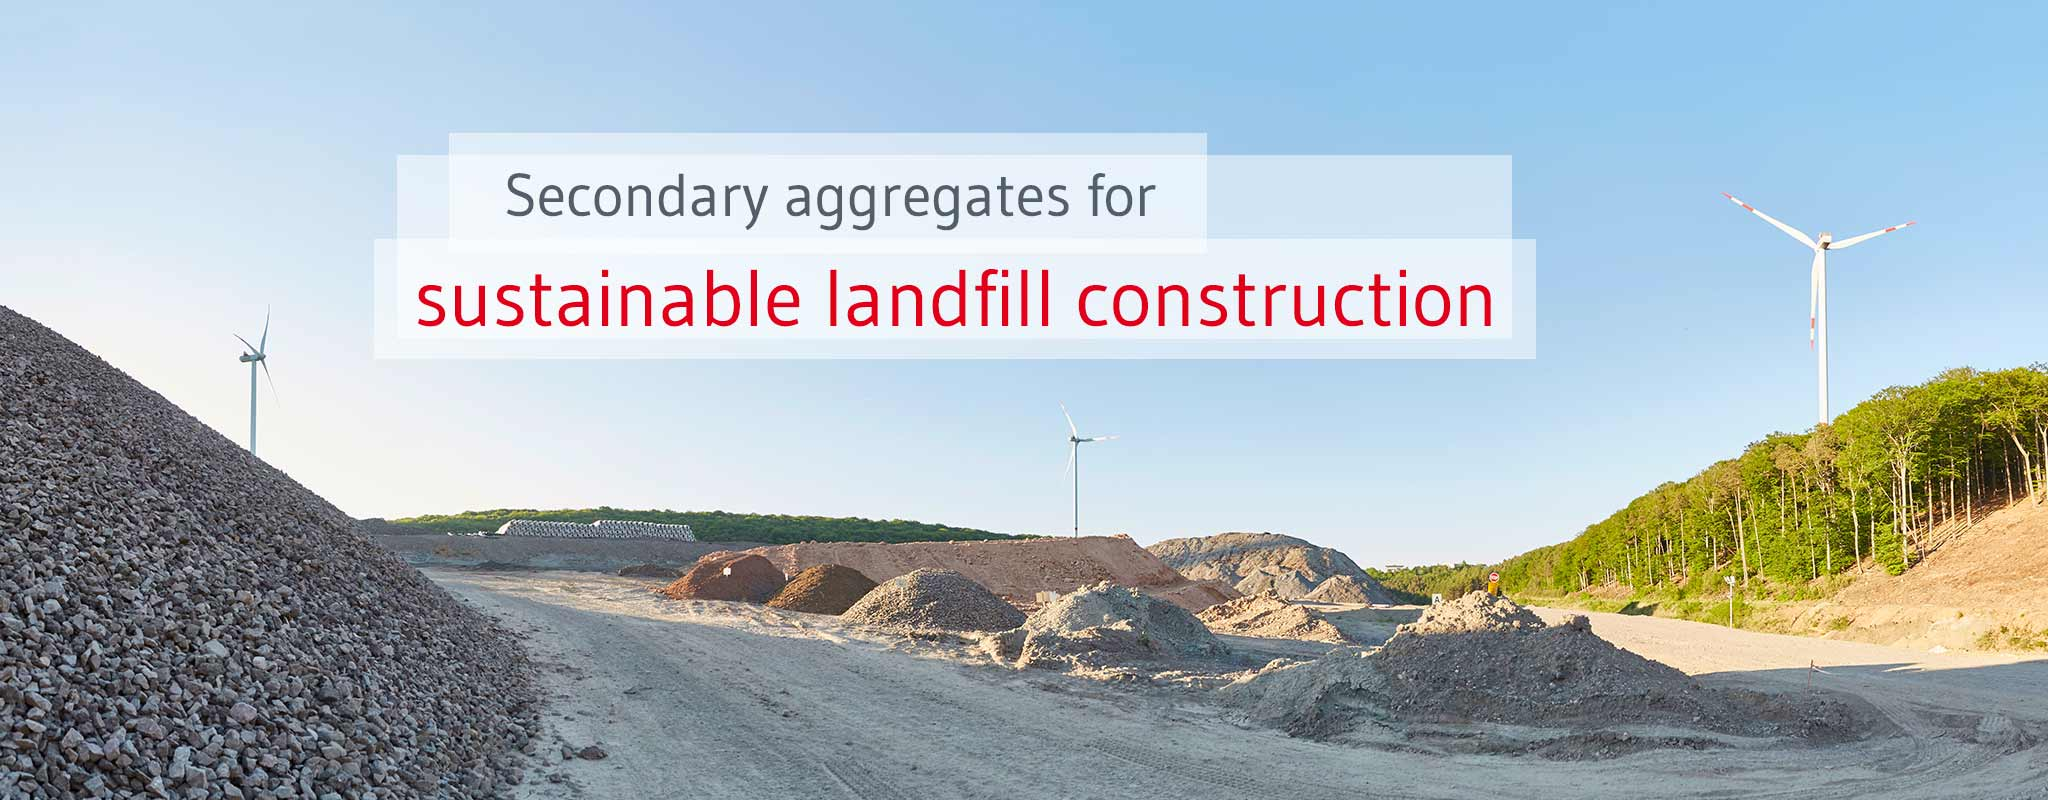 Sustainable landfill construction with secondary landfill materials.